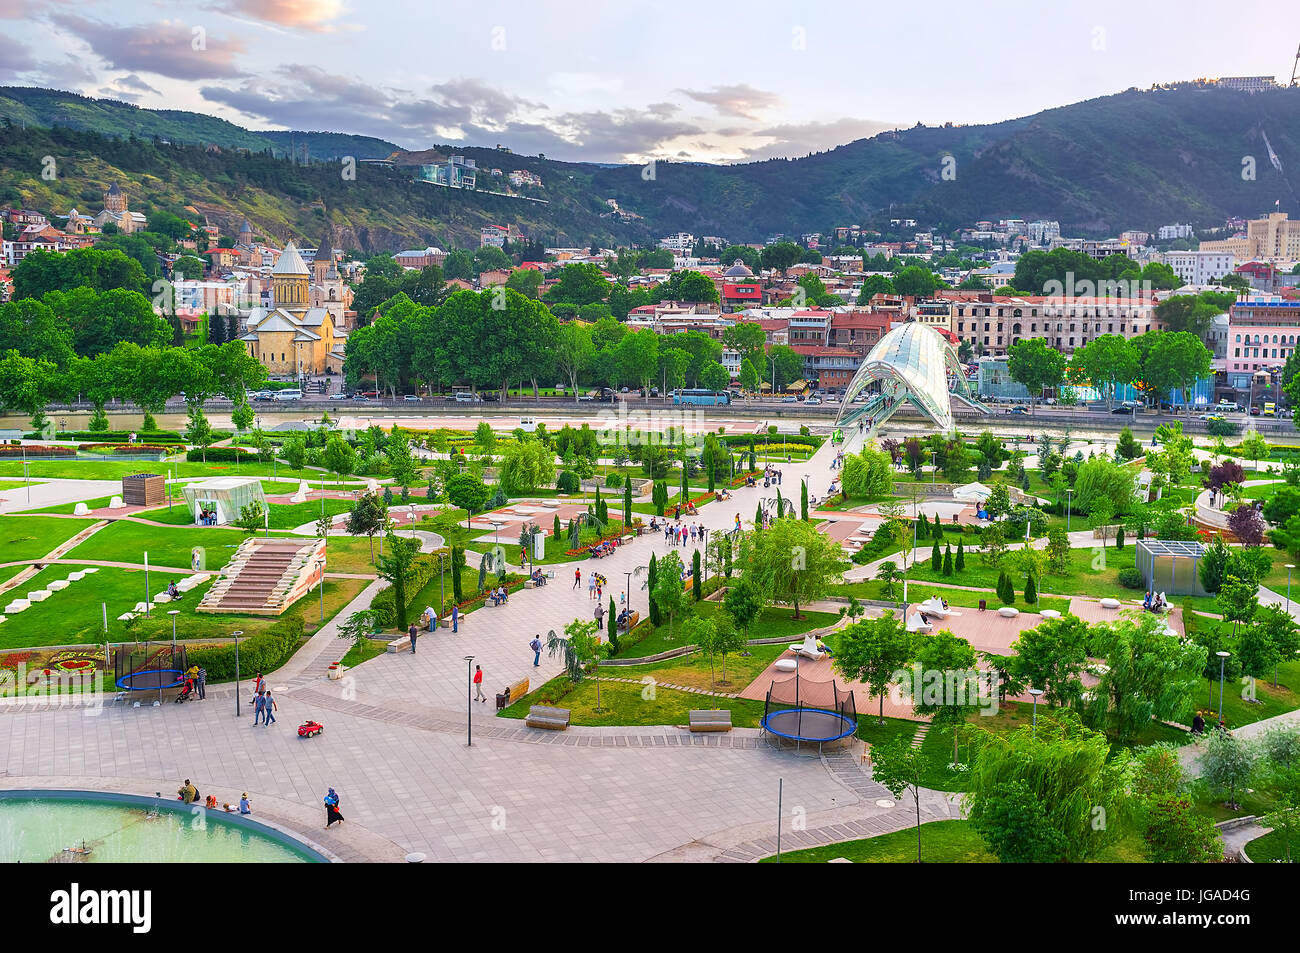 TBILISI, GEORGIA - JUNE 2, 2016: The Rike park is the central recreational area in old town, located on the bank Stock Photo